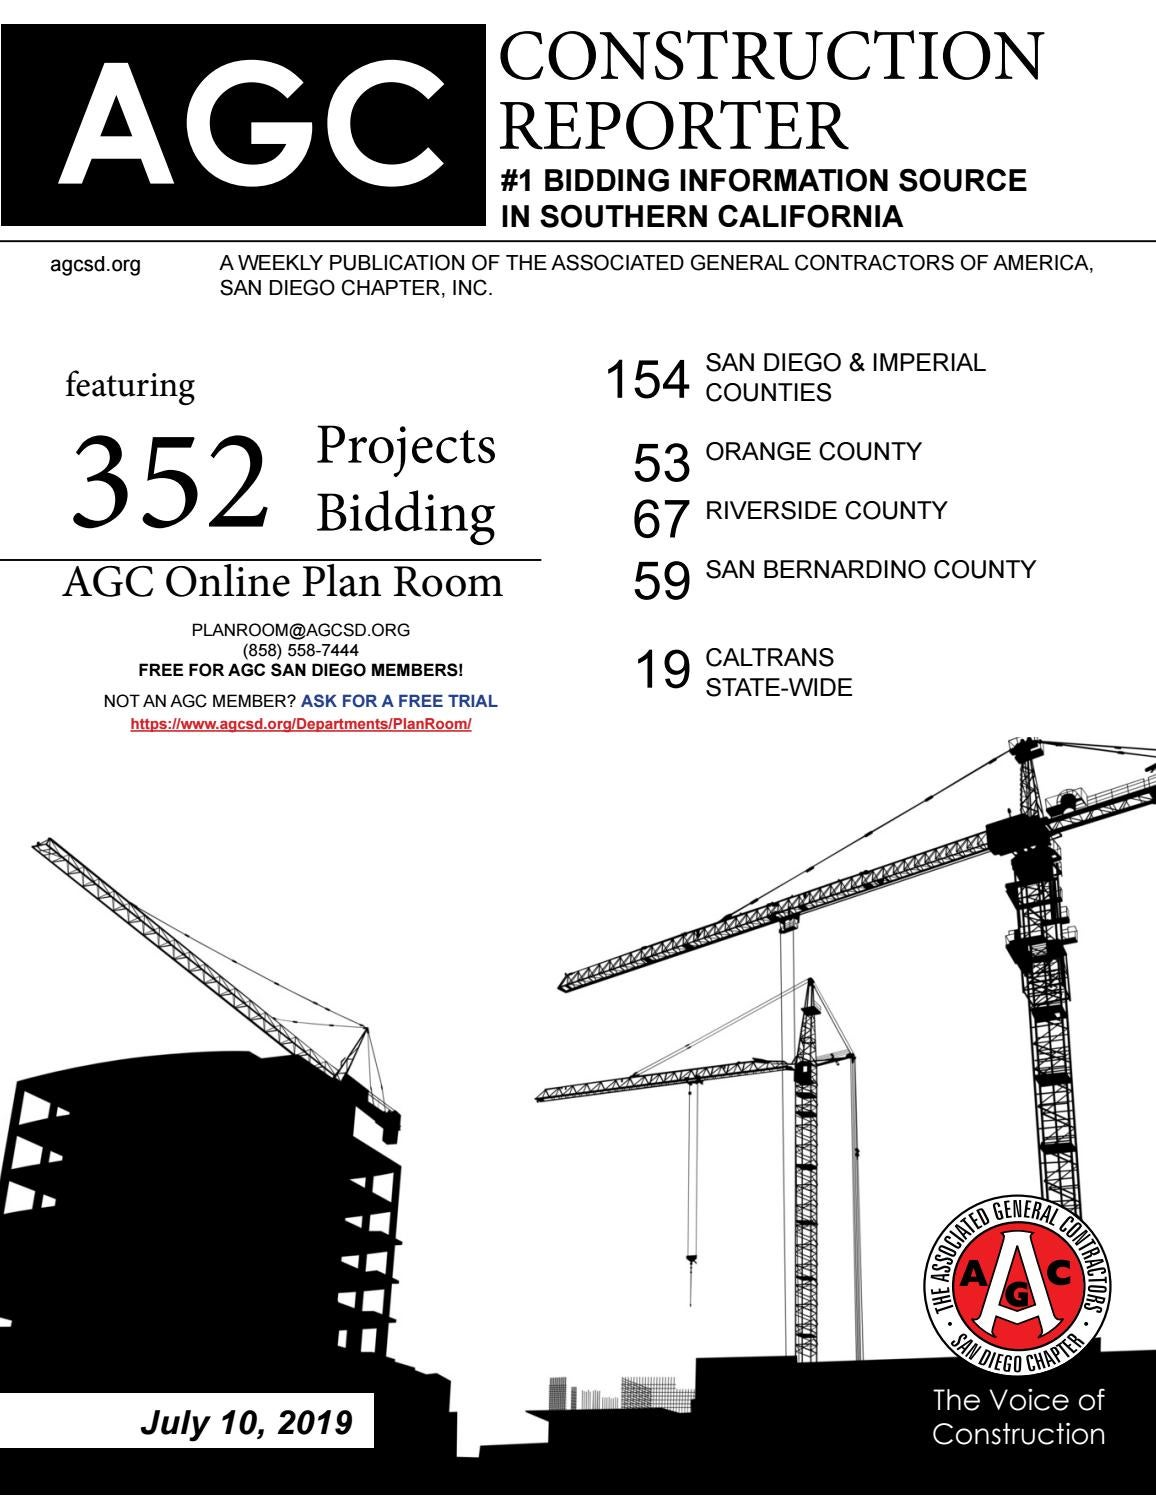 AGC Construction Reporter - July 10, 2019 by AGC San go ... on